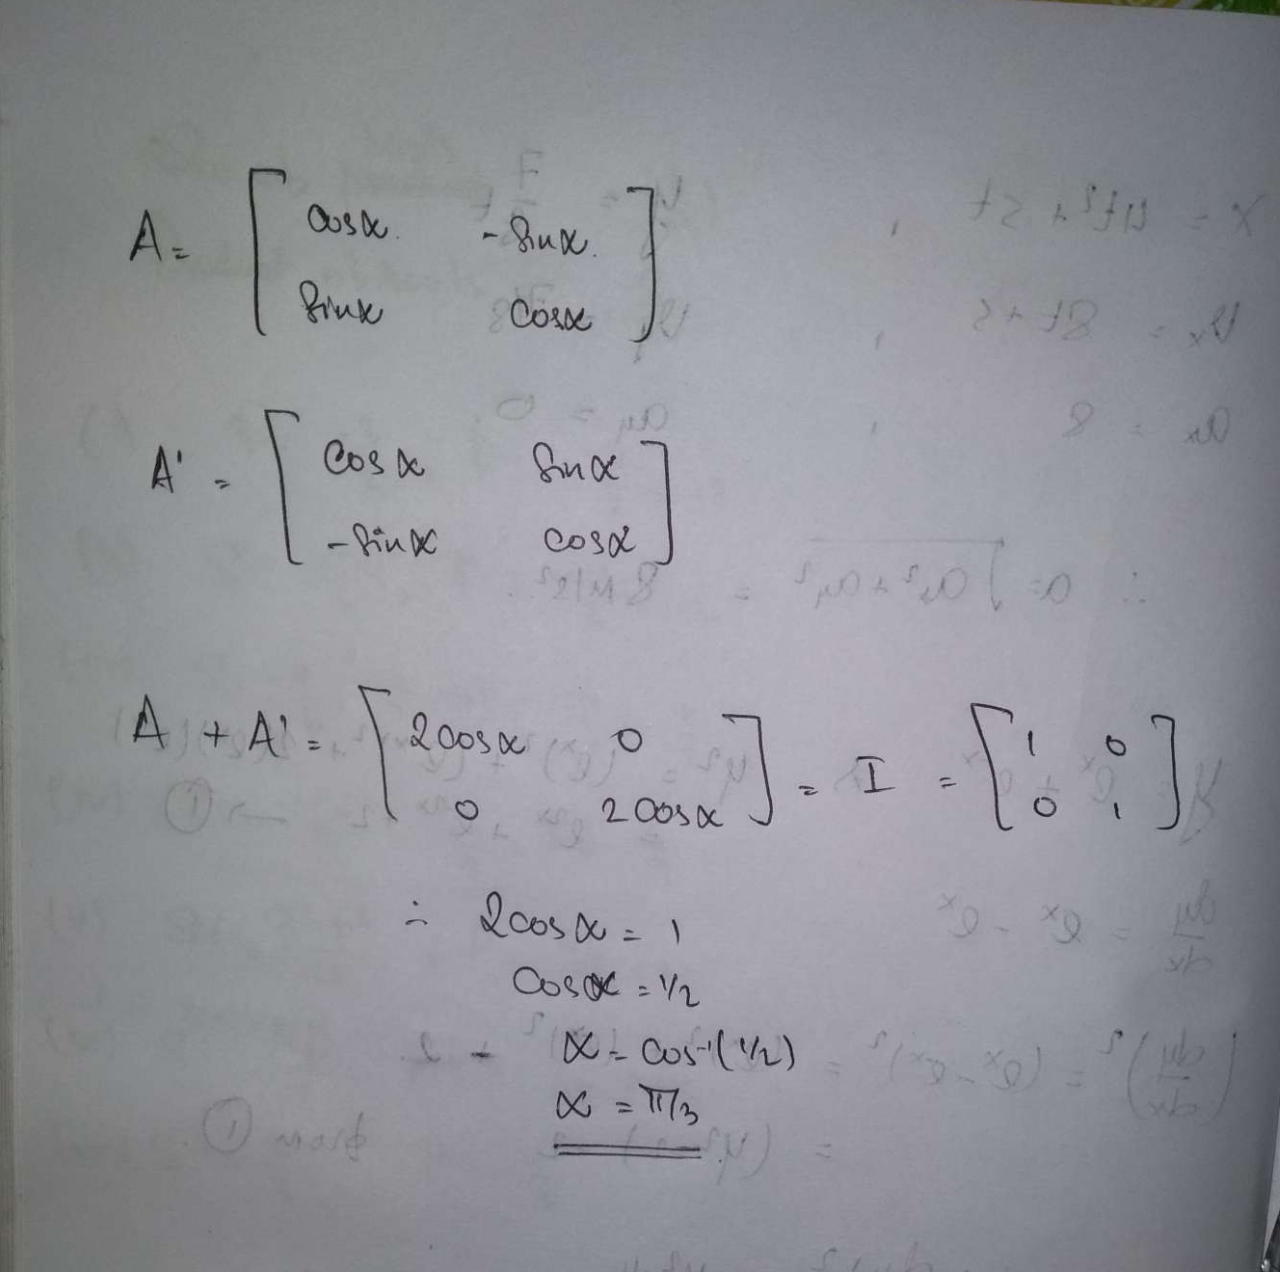 A=(cosα -sinα sinα cosα)1. If A+ A' =1, find the value of α